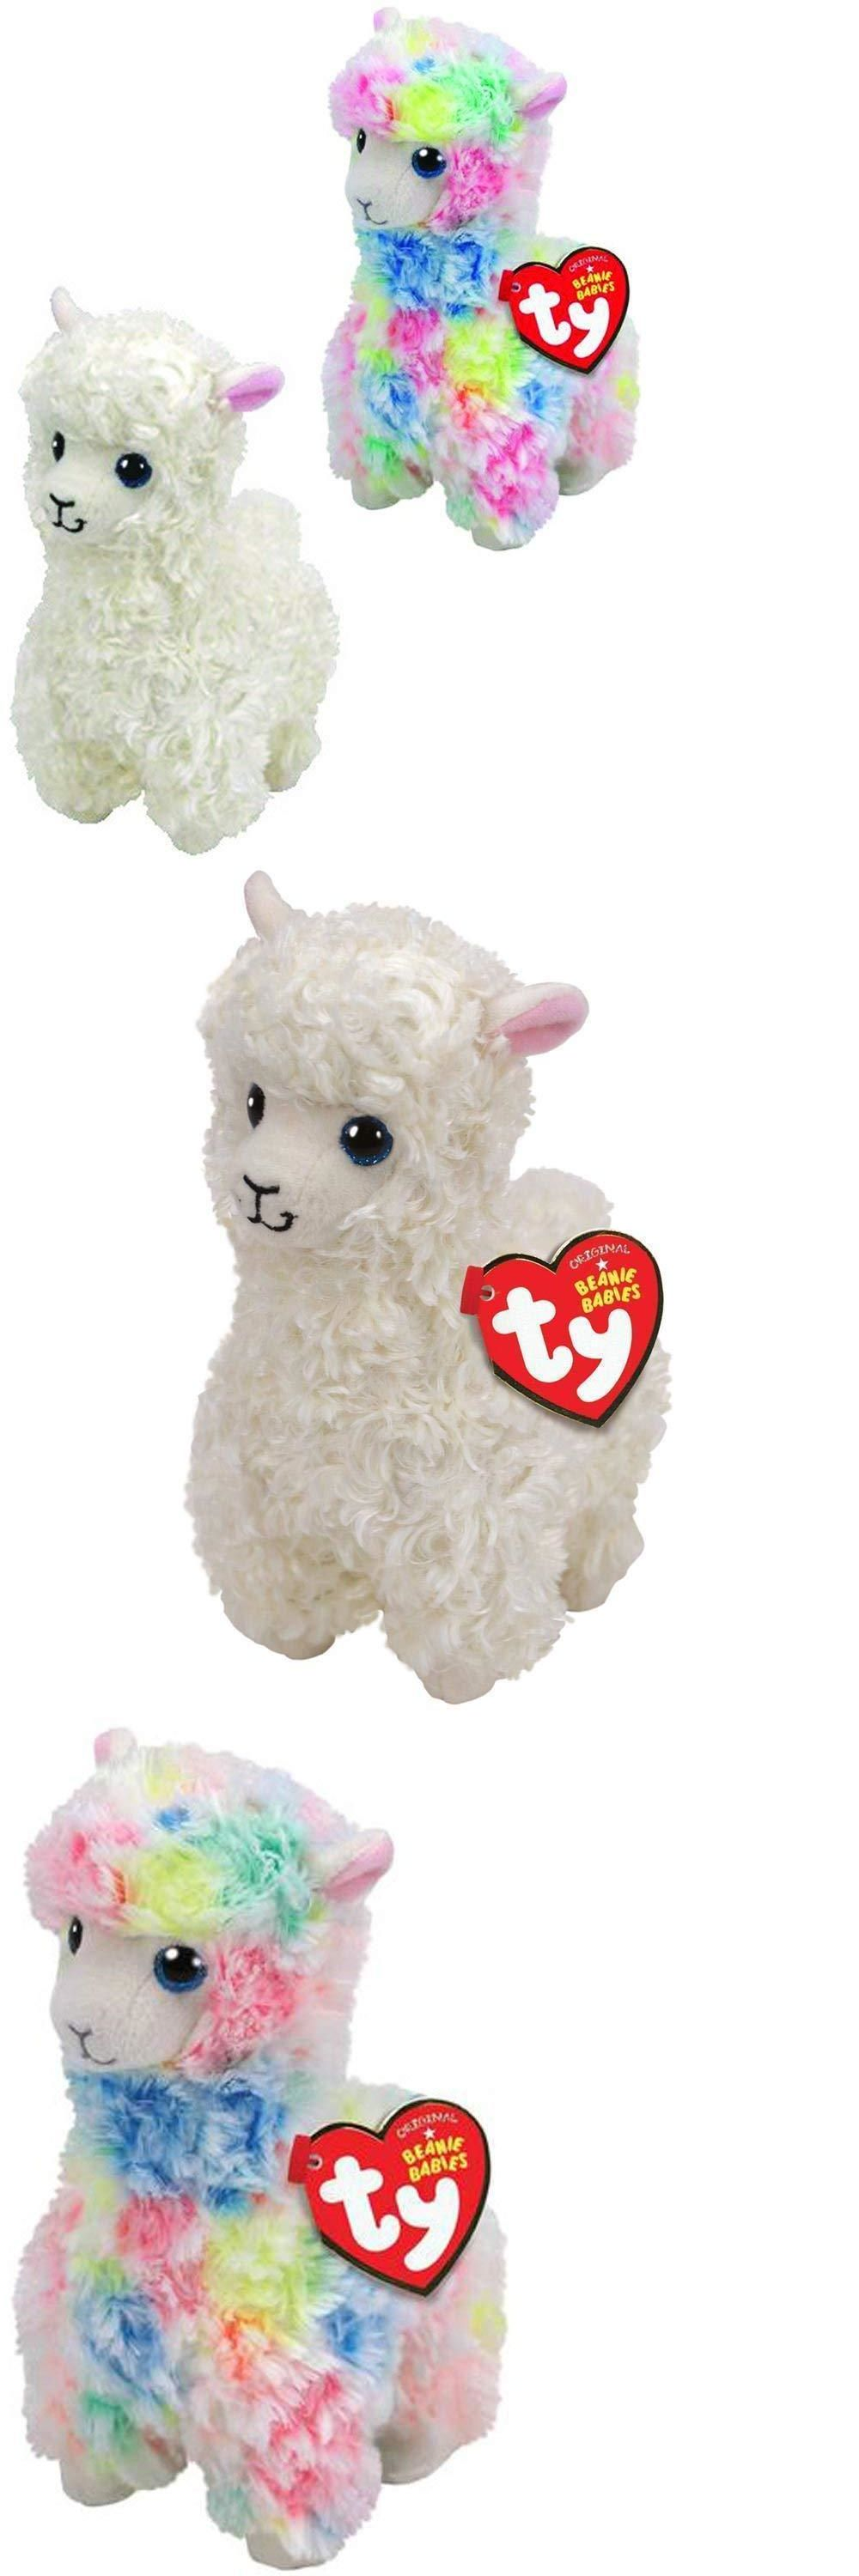 d8ff4010fd2 Current 165959  Set Of 2 Ty Beanie Baby 8 White Lily And Rainbow Lola Llama  Plush W Heart Tags -  BUY IT NOW ONLY   14.95 on eBay!